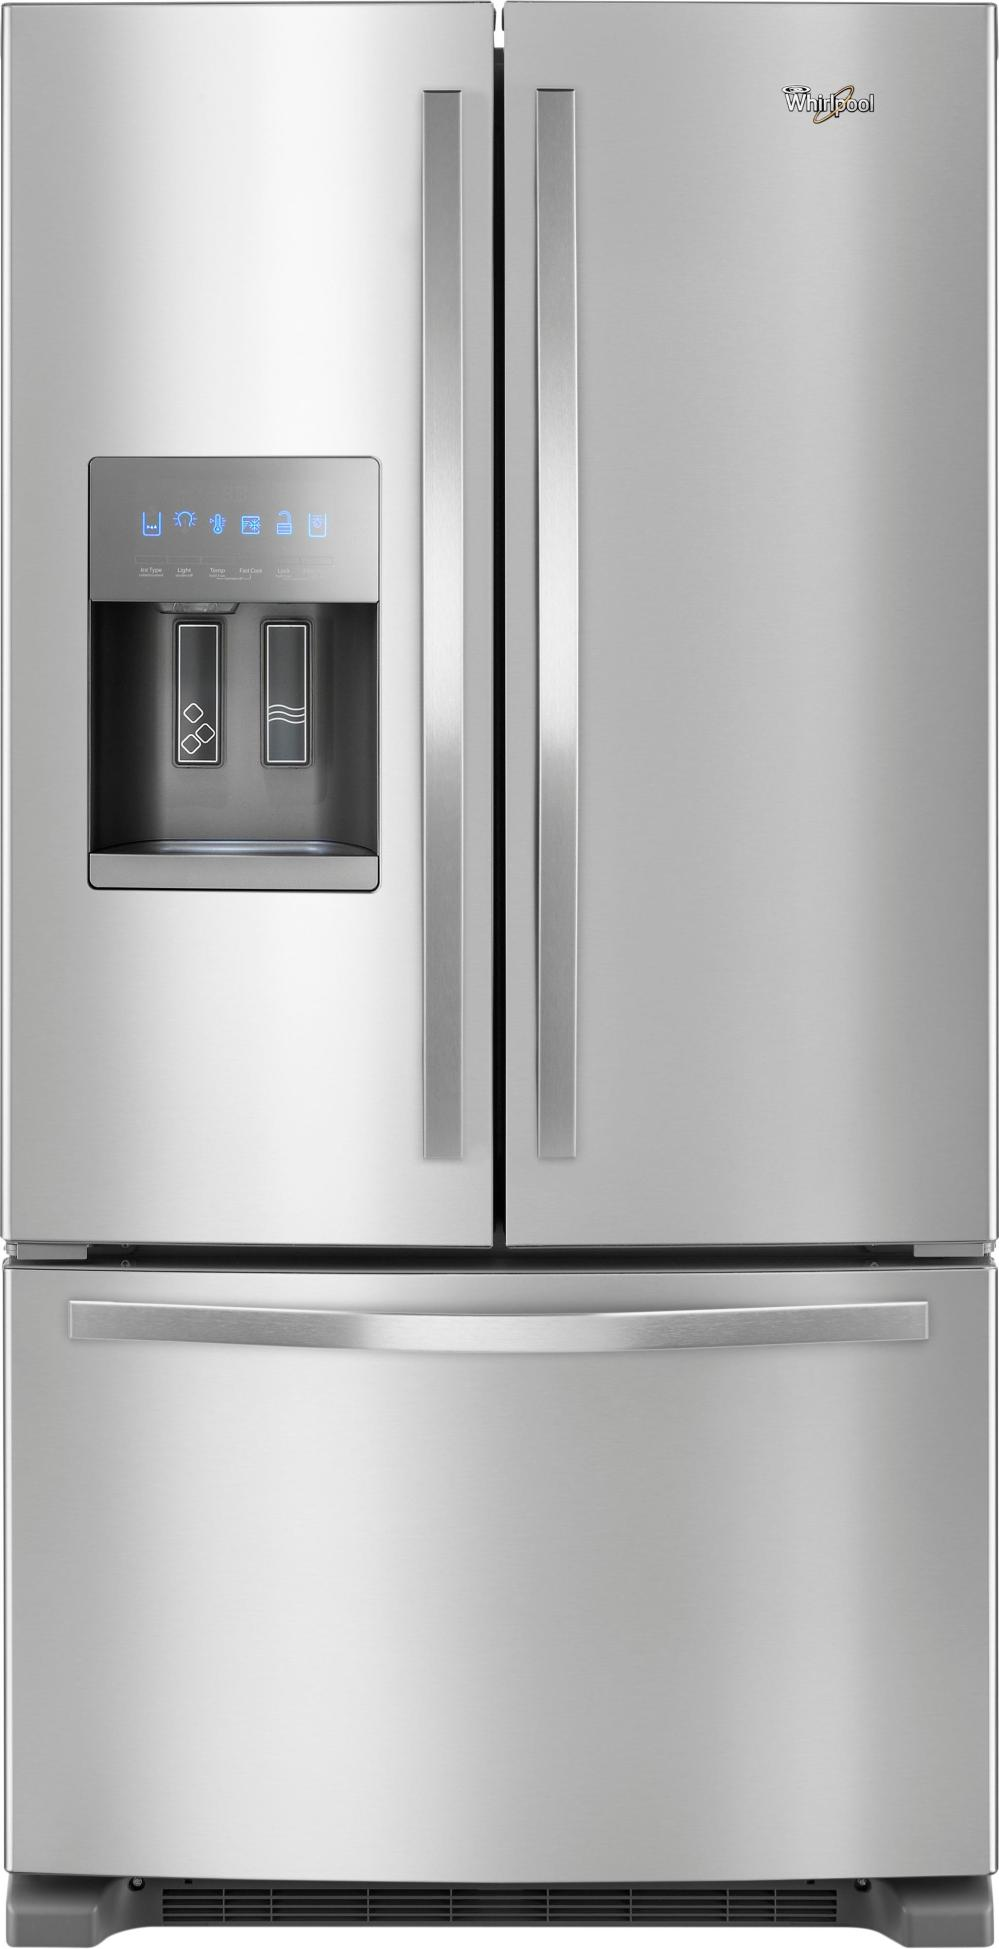 medium resolution of ft french door refrigerator stainless steel front zoom